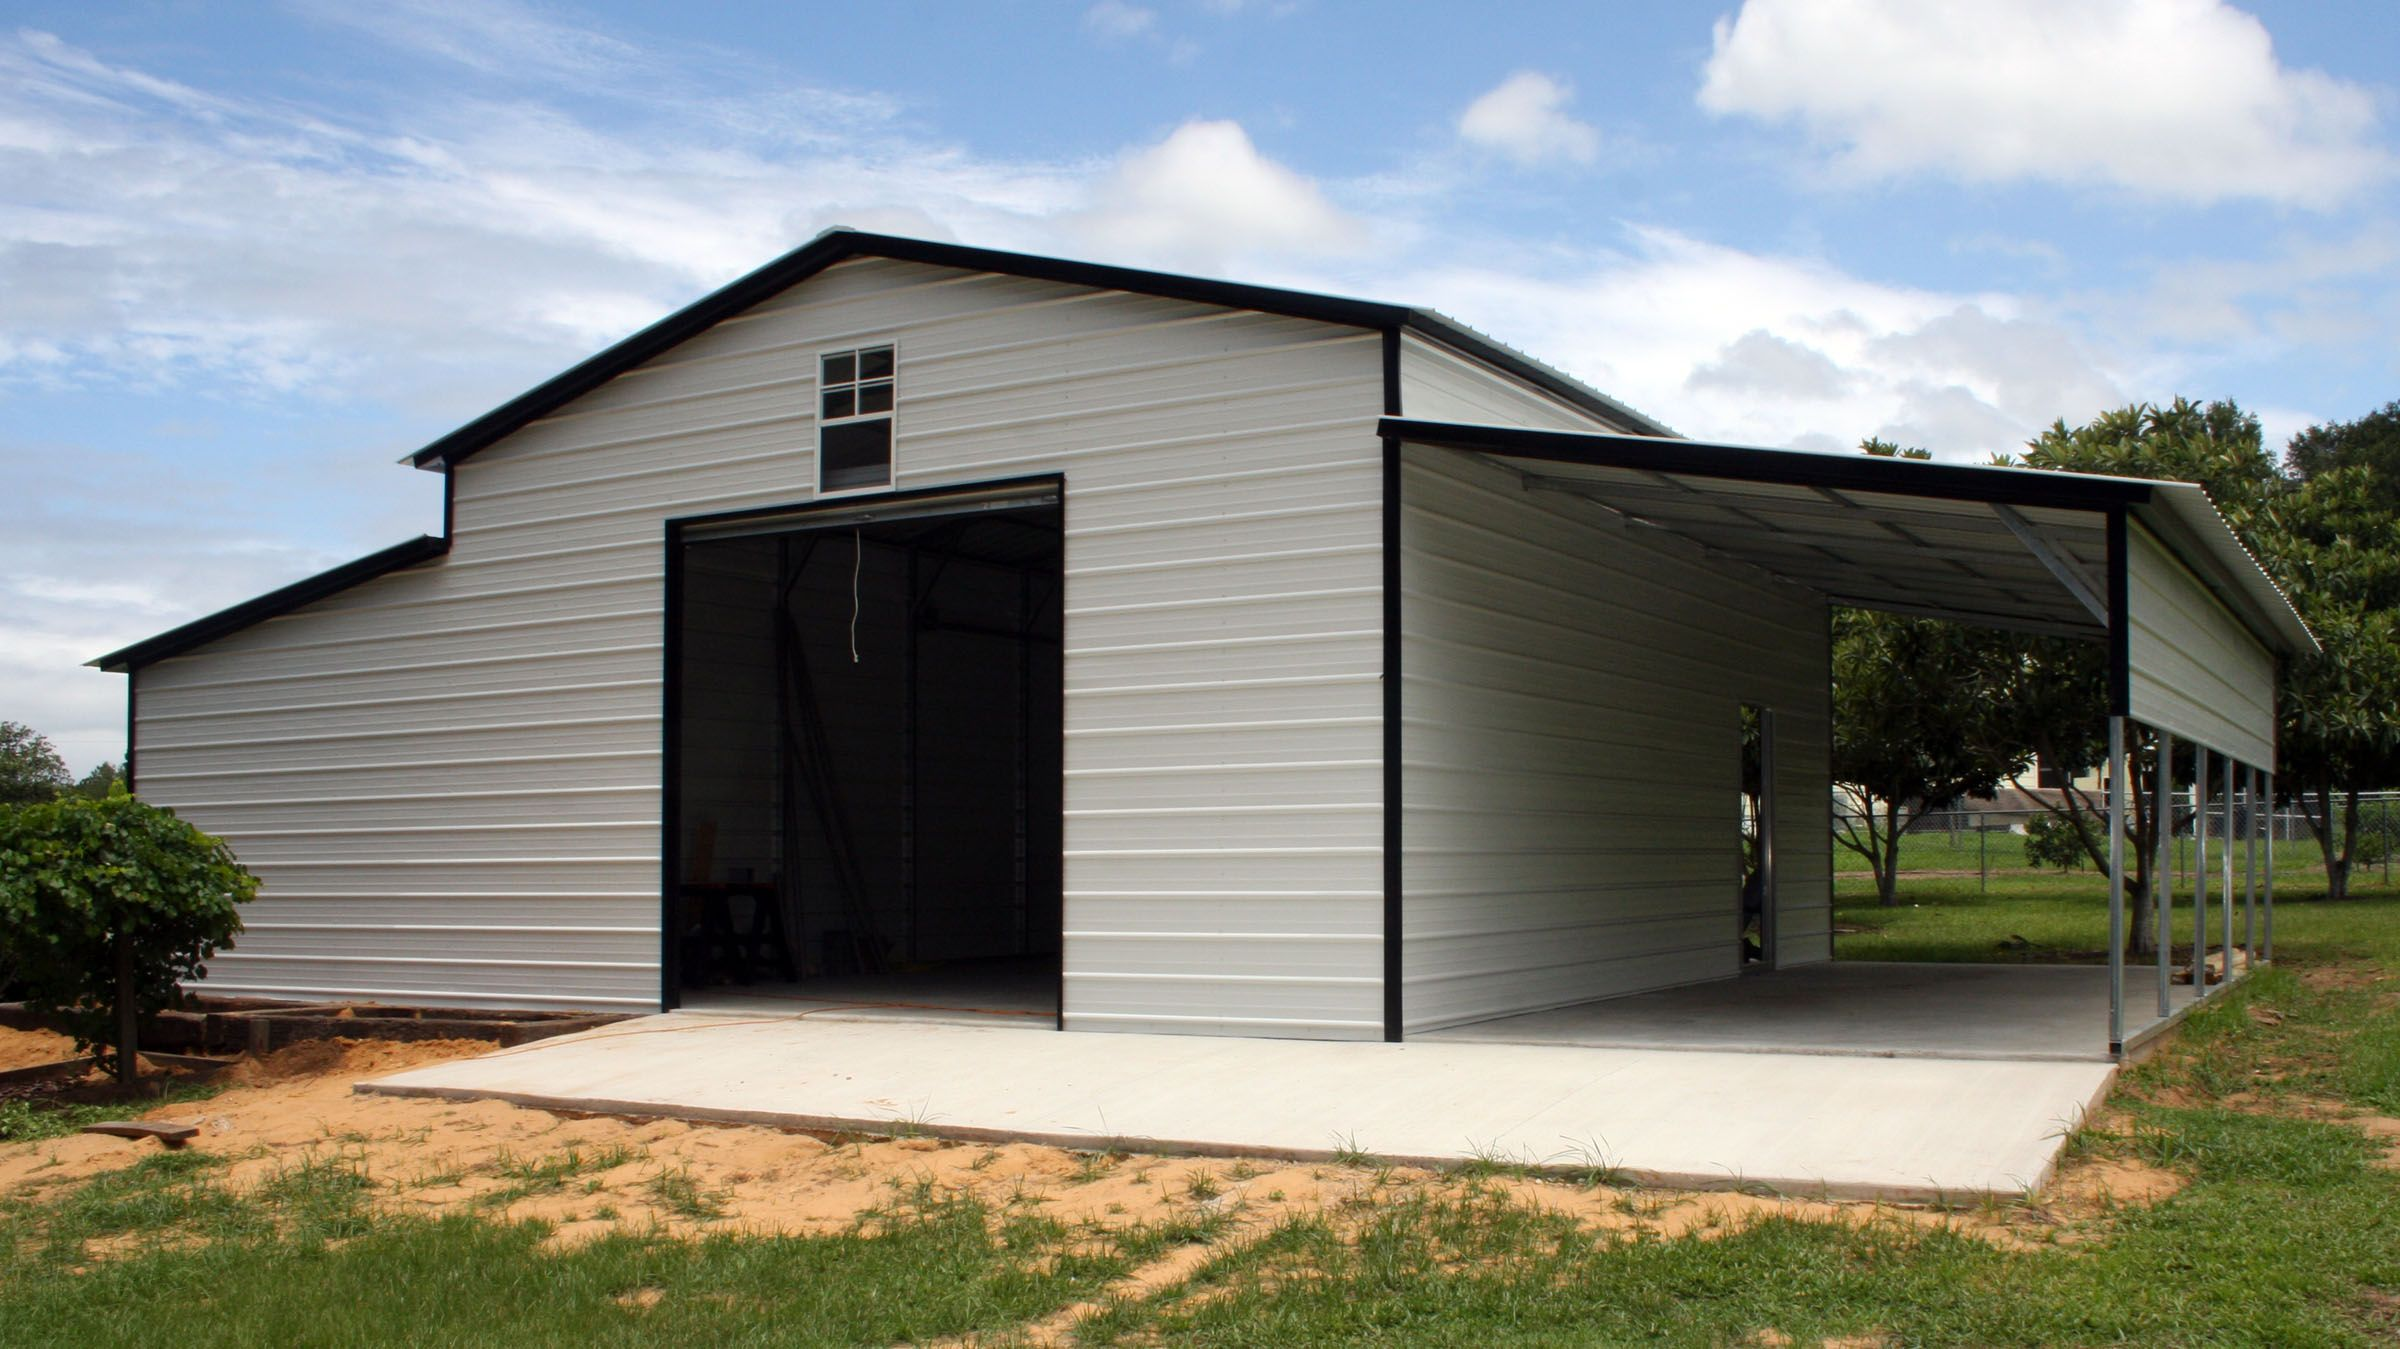 Barn Metal Metal Barns With Living Quarters Barn White Black Open Door